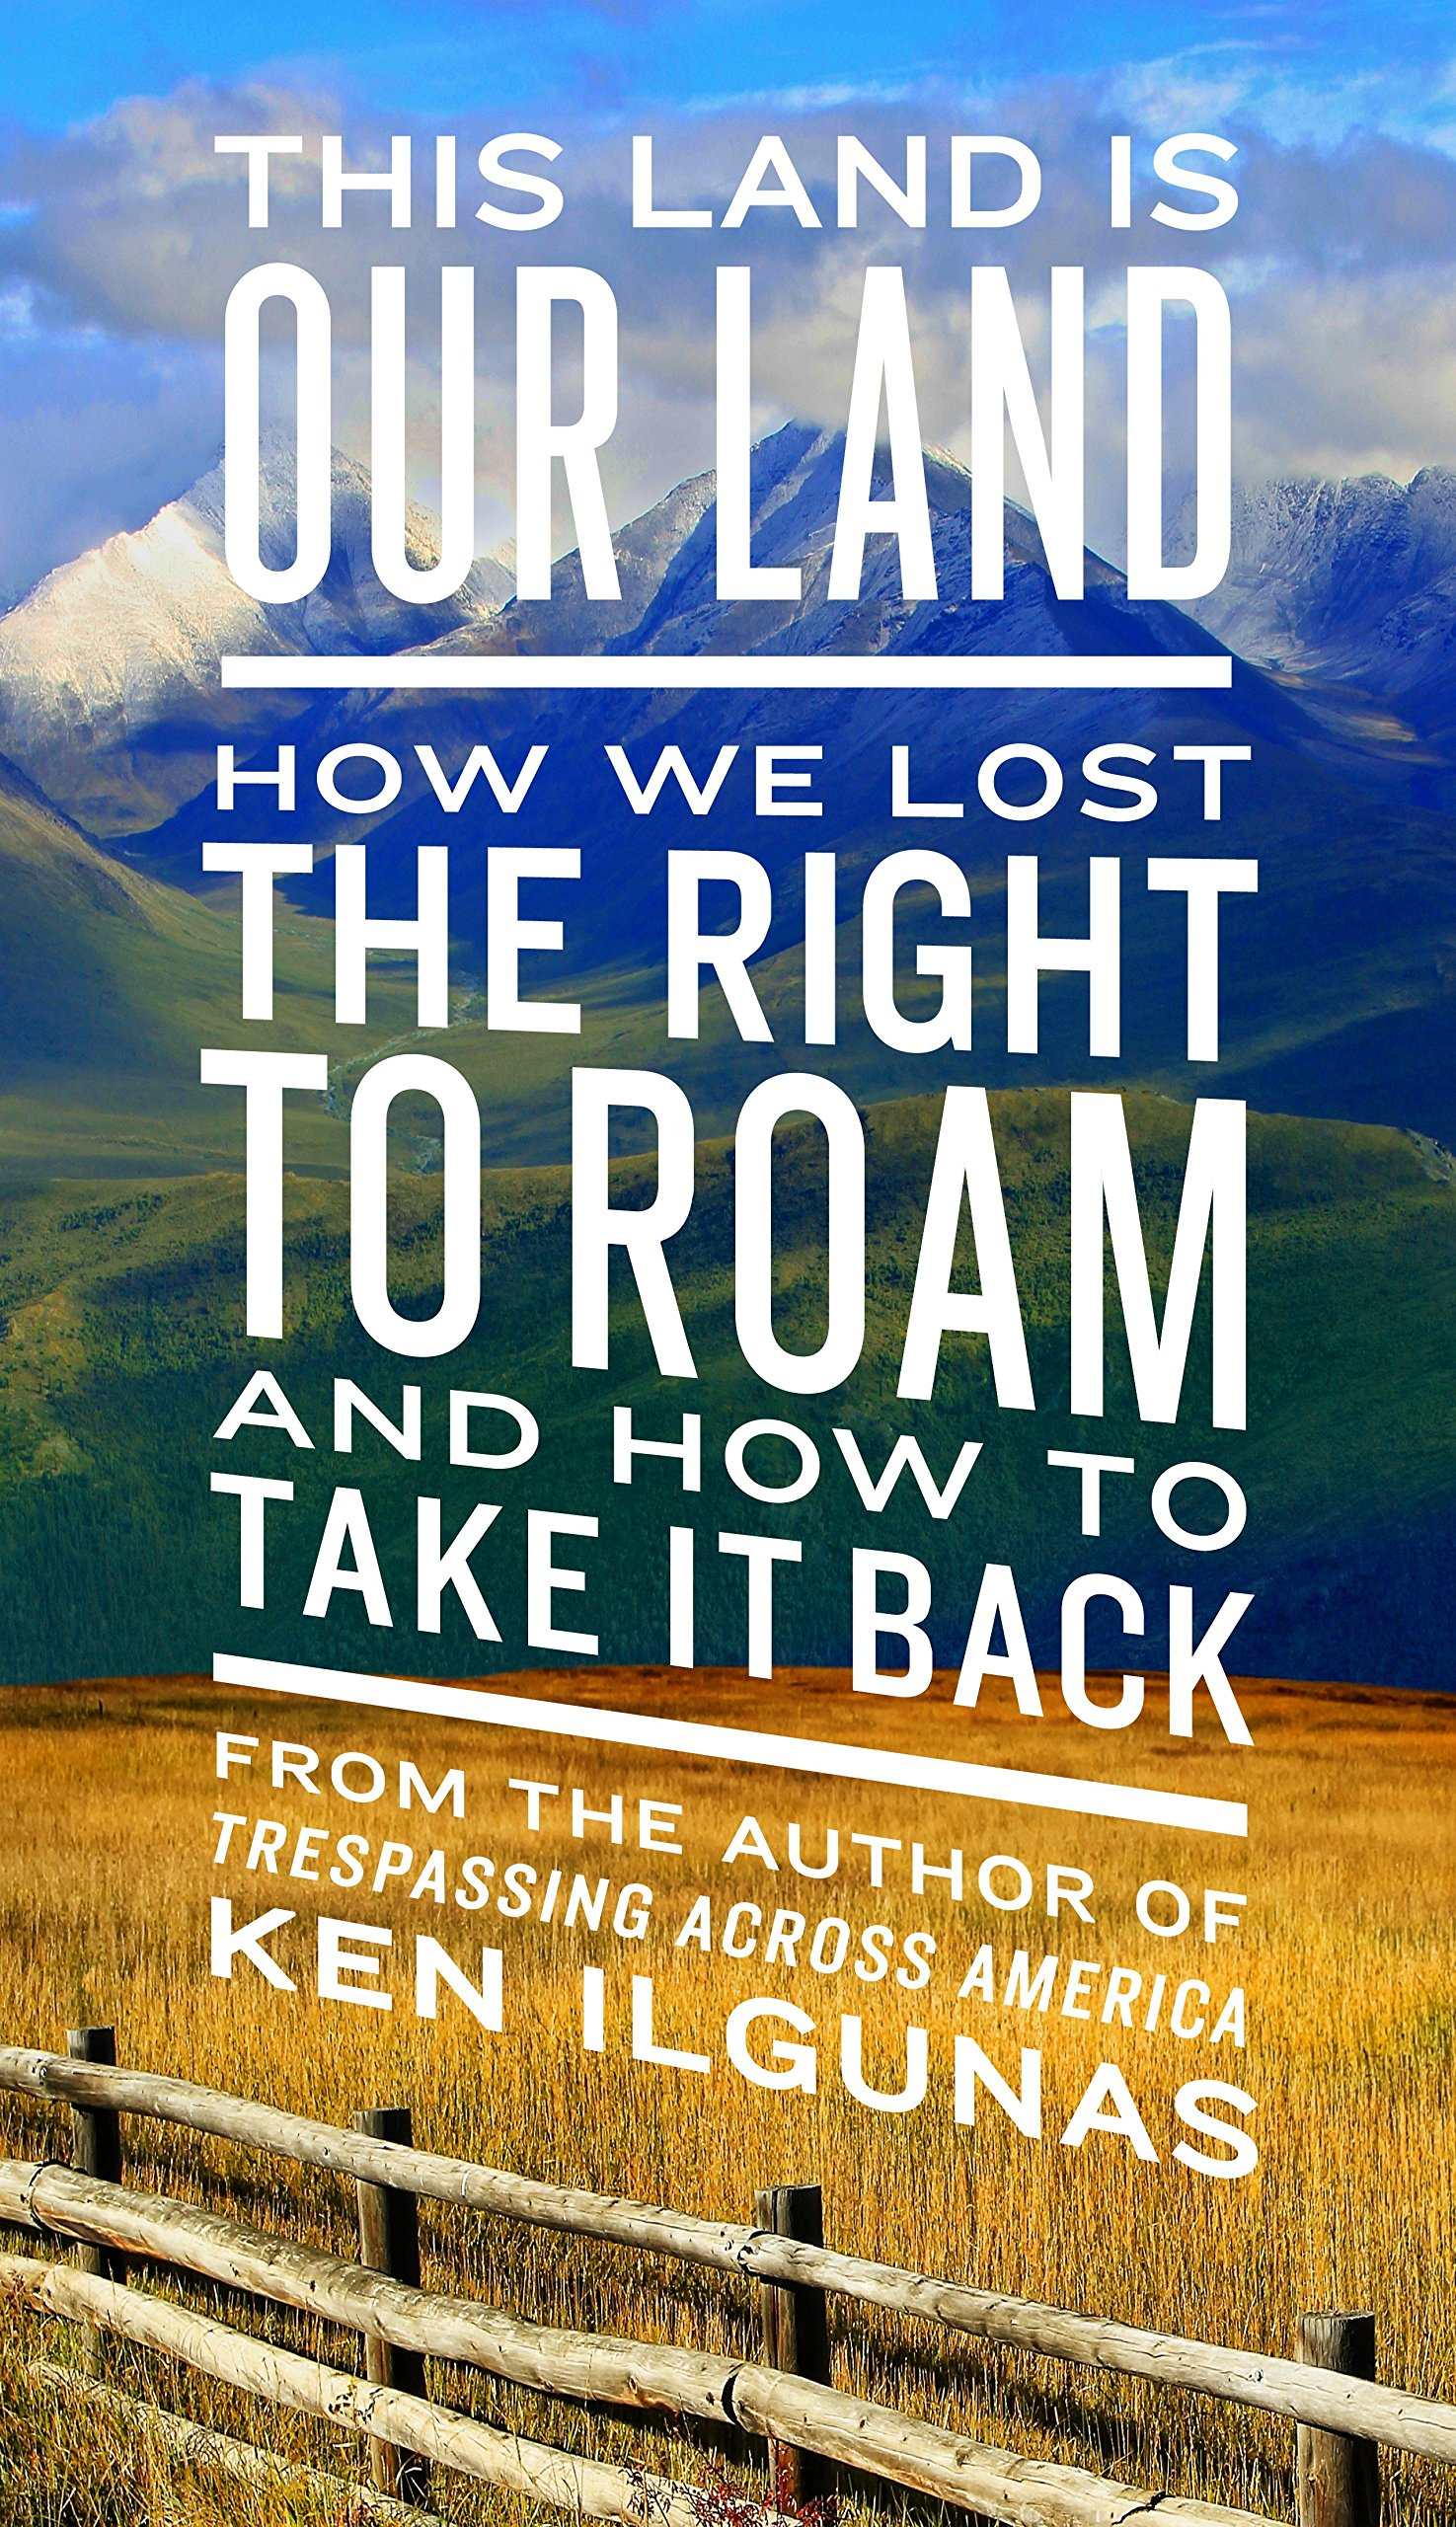 4d8e83738fa This Land Is Our Land  How We Lost the Right to Roam and How to Take It  Back  Ken Ilgunas  9780735217843  Amazon.com  Books